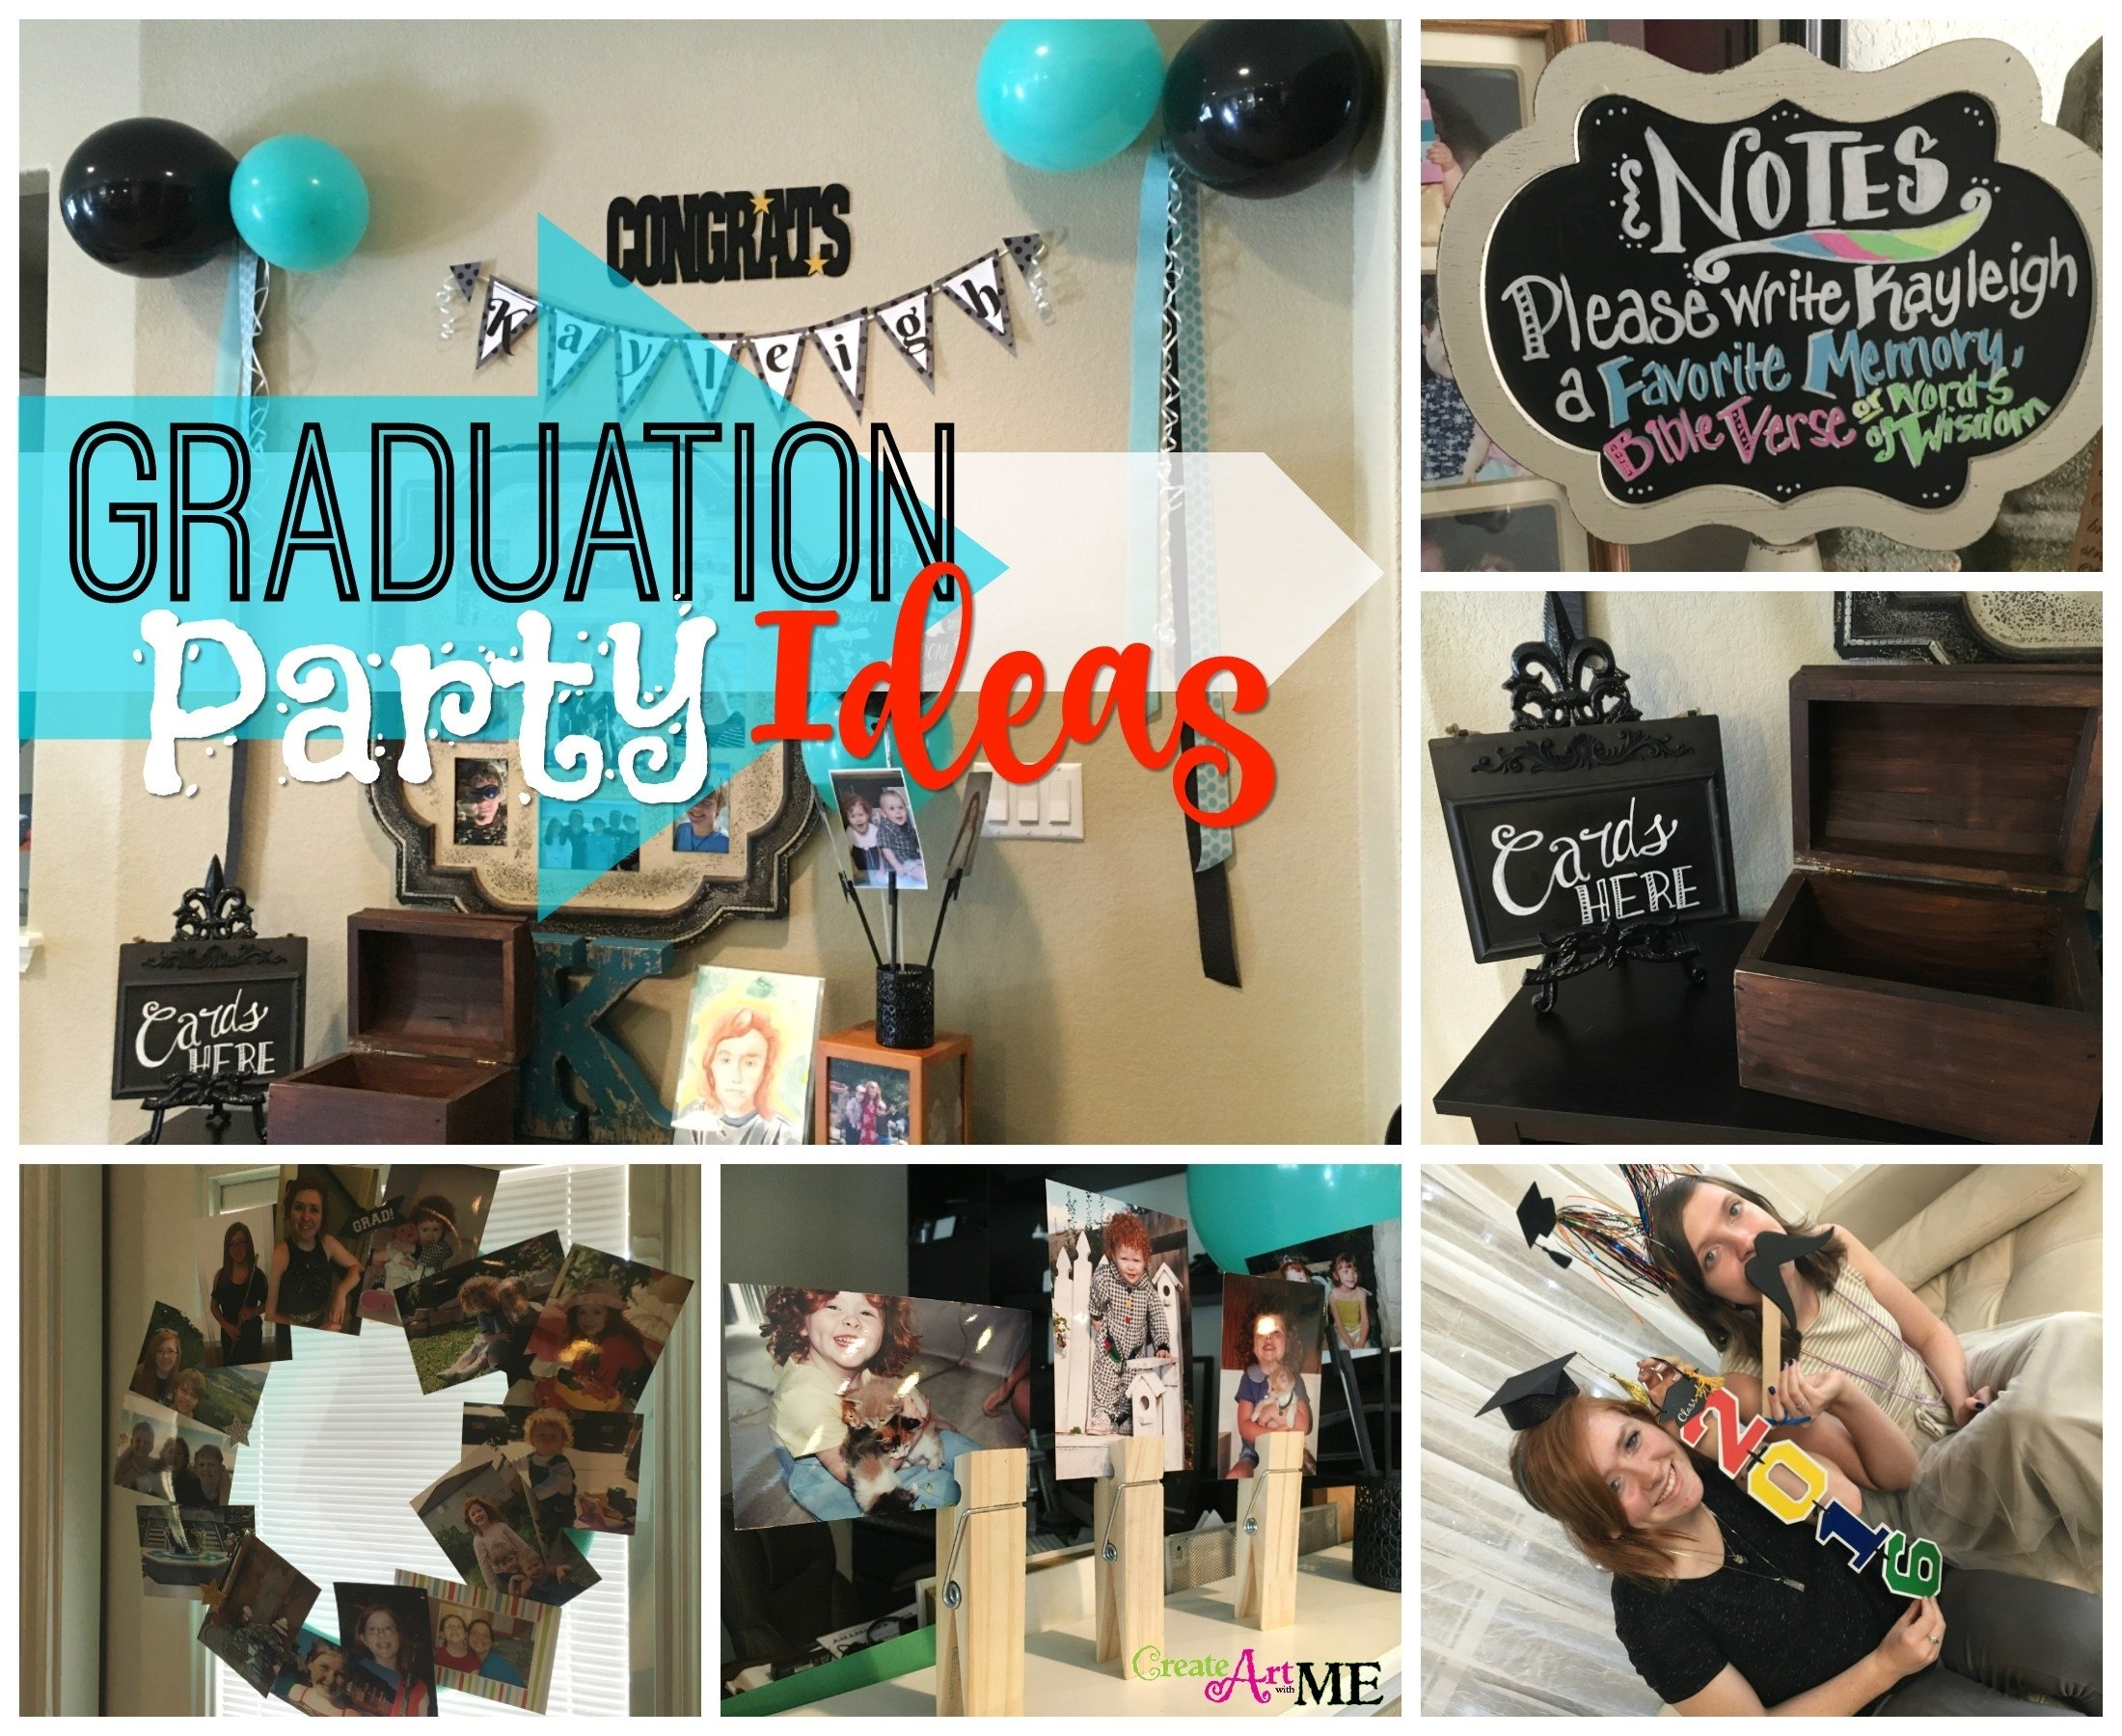 10 Trendy Ideas For A Graduation Party graduation party ideas create art with me